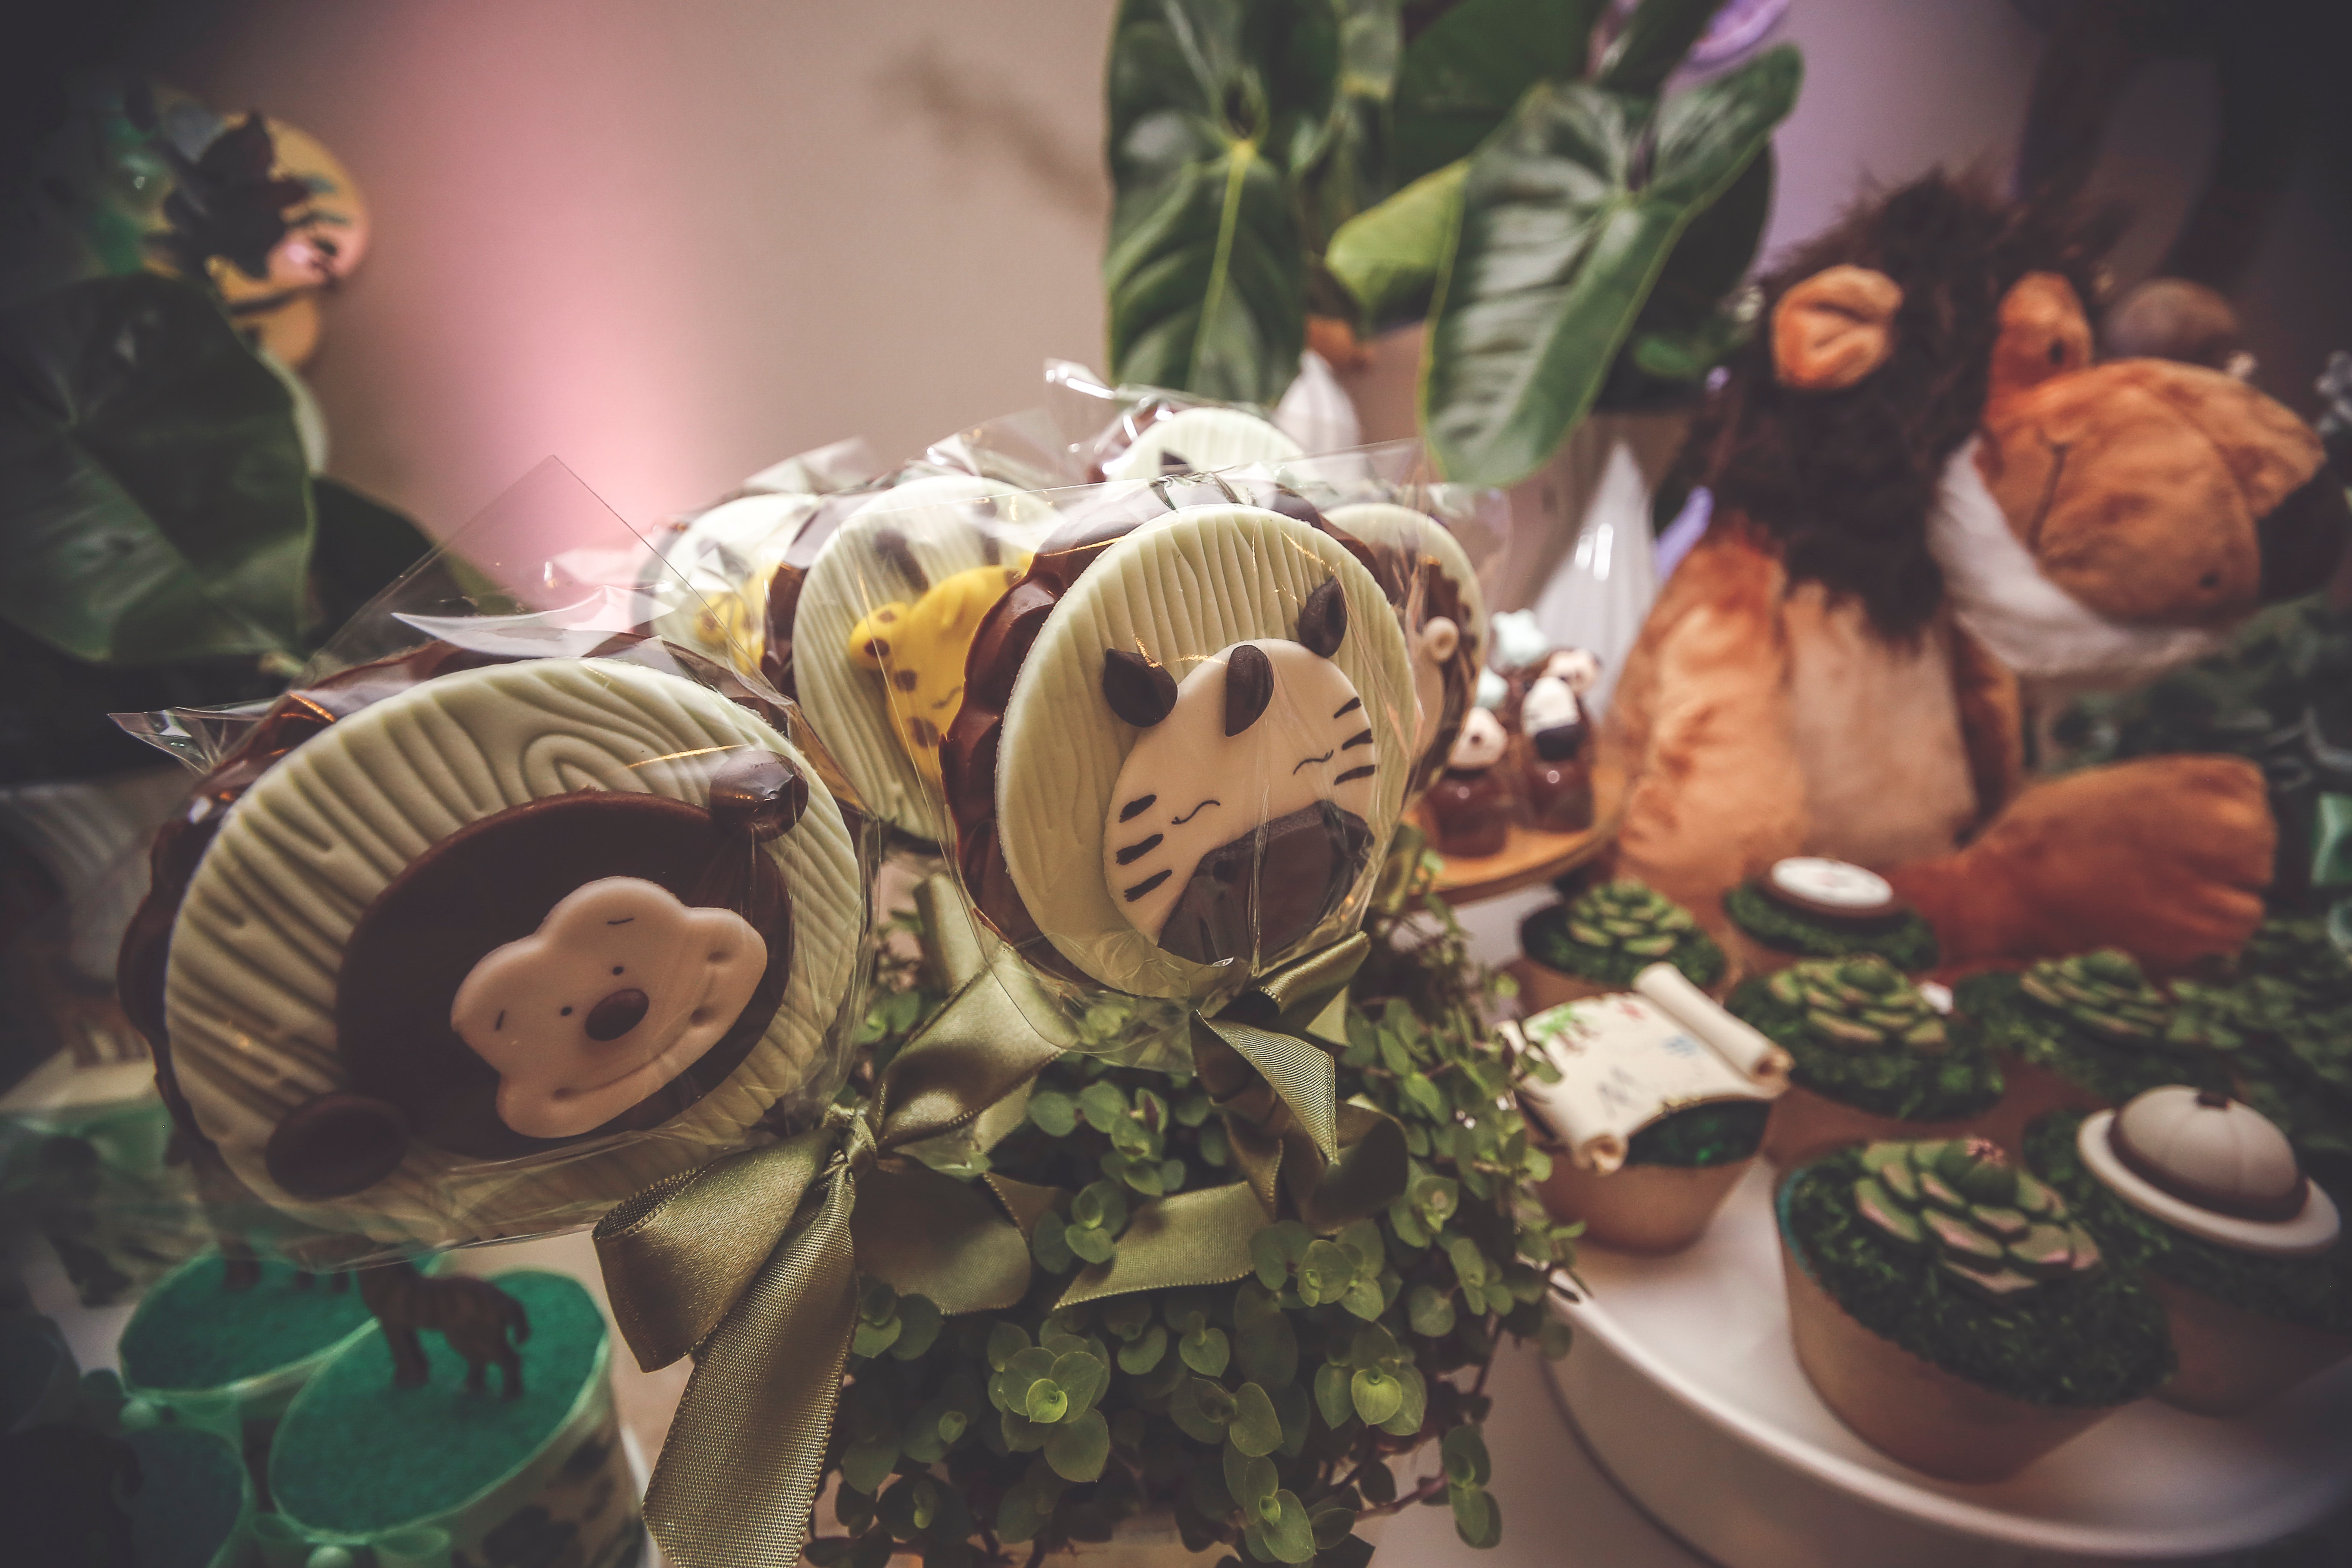 animals-and-jungle-theme-party-2337858